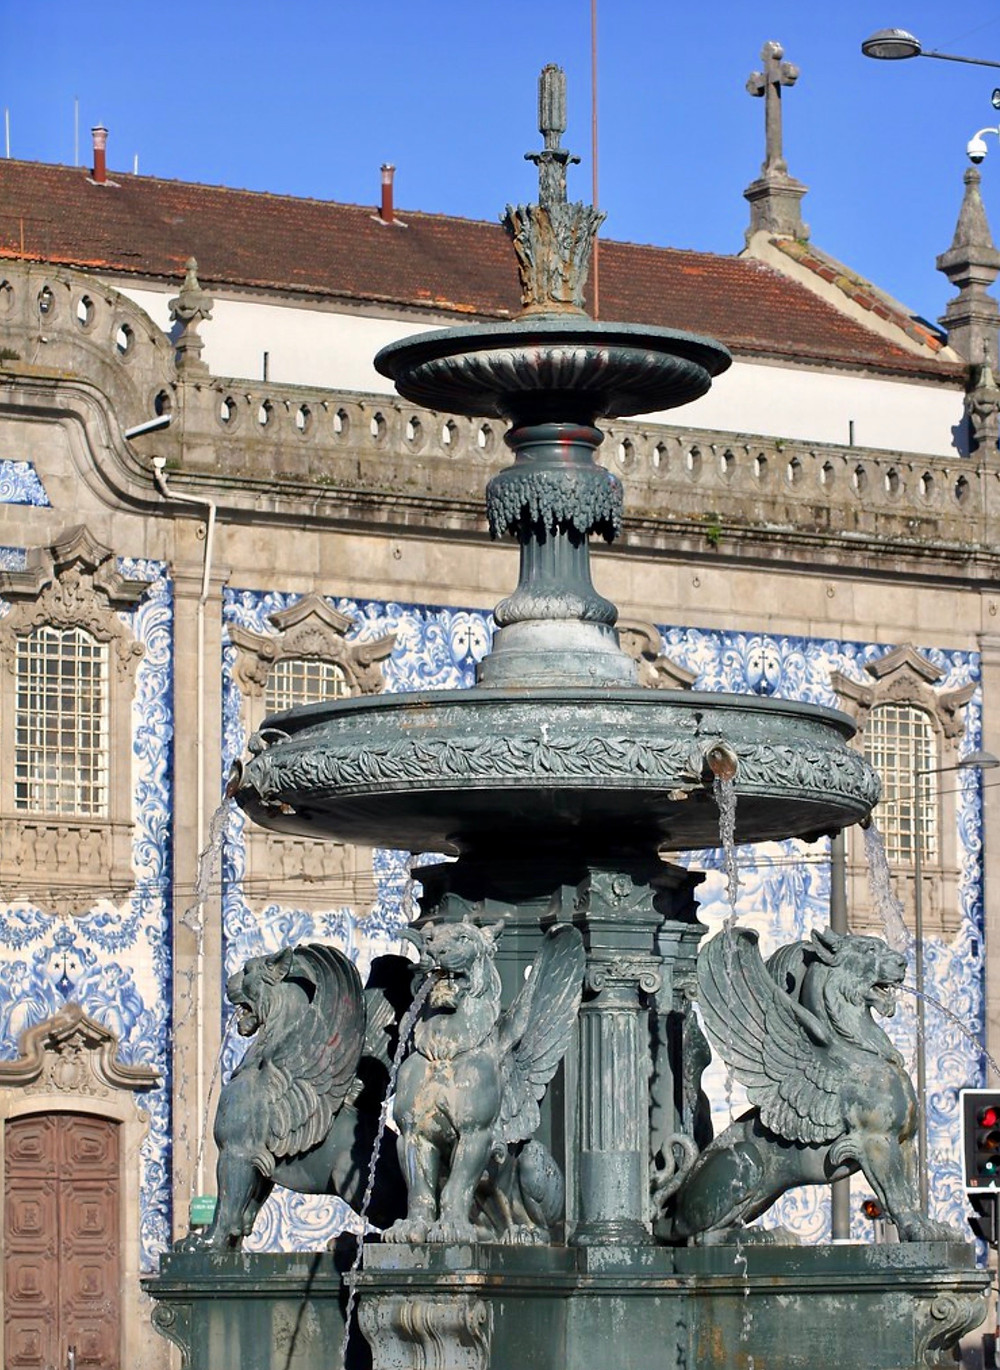 This fountain outside the Igreja de Carmo looks very Gryffindor like to me. And J. K. Rowling did live in Porto for two years.